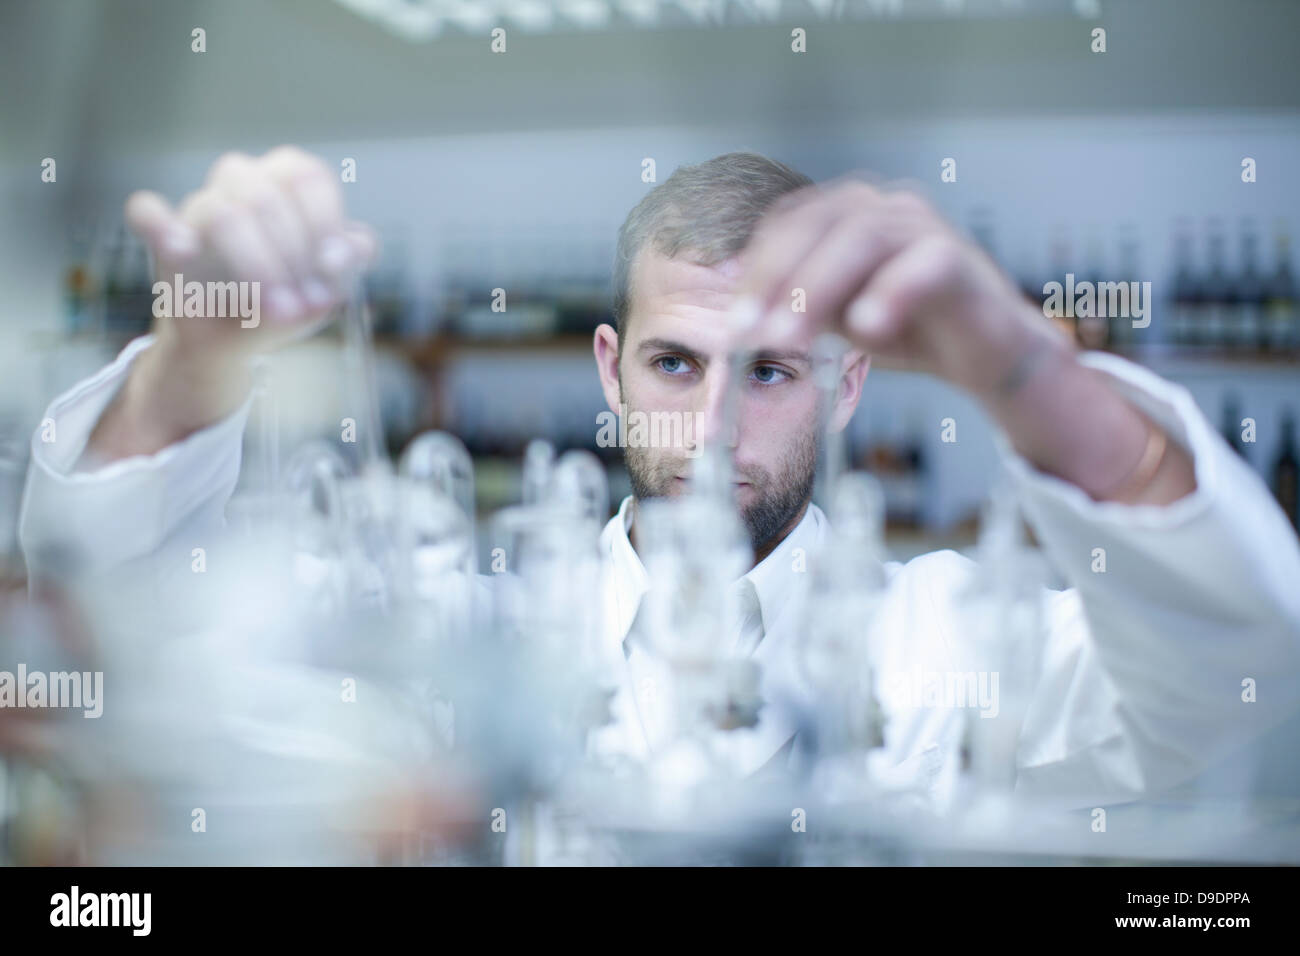 Oenologist mixing during sample testing in laboratory - Stock Image